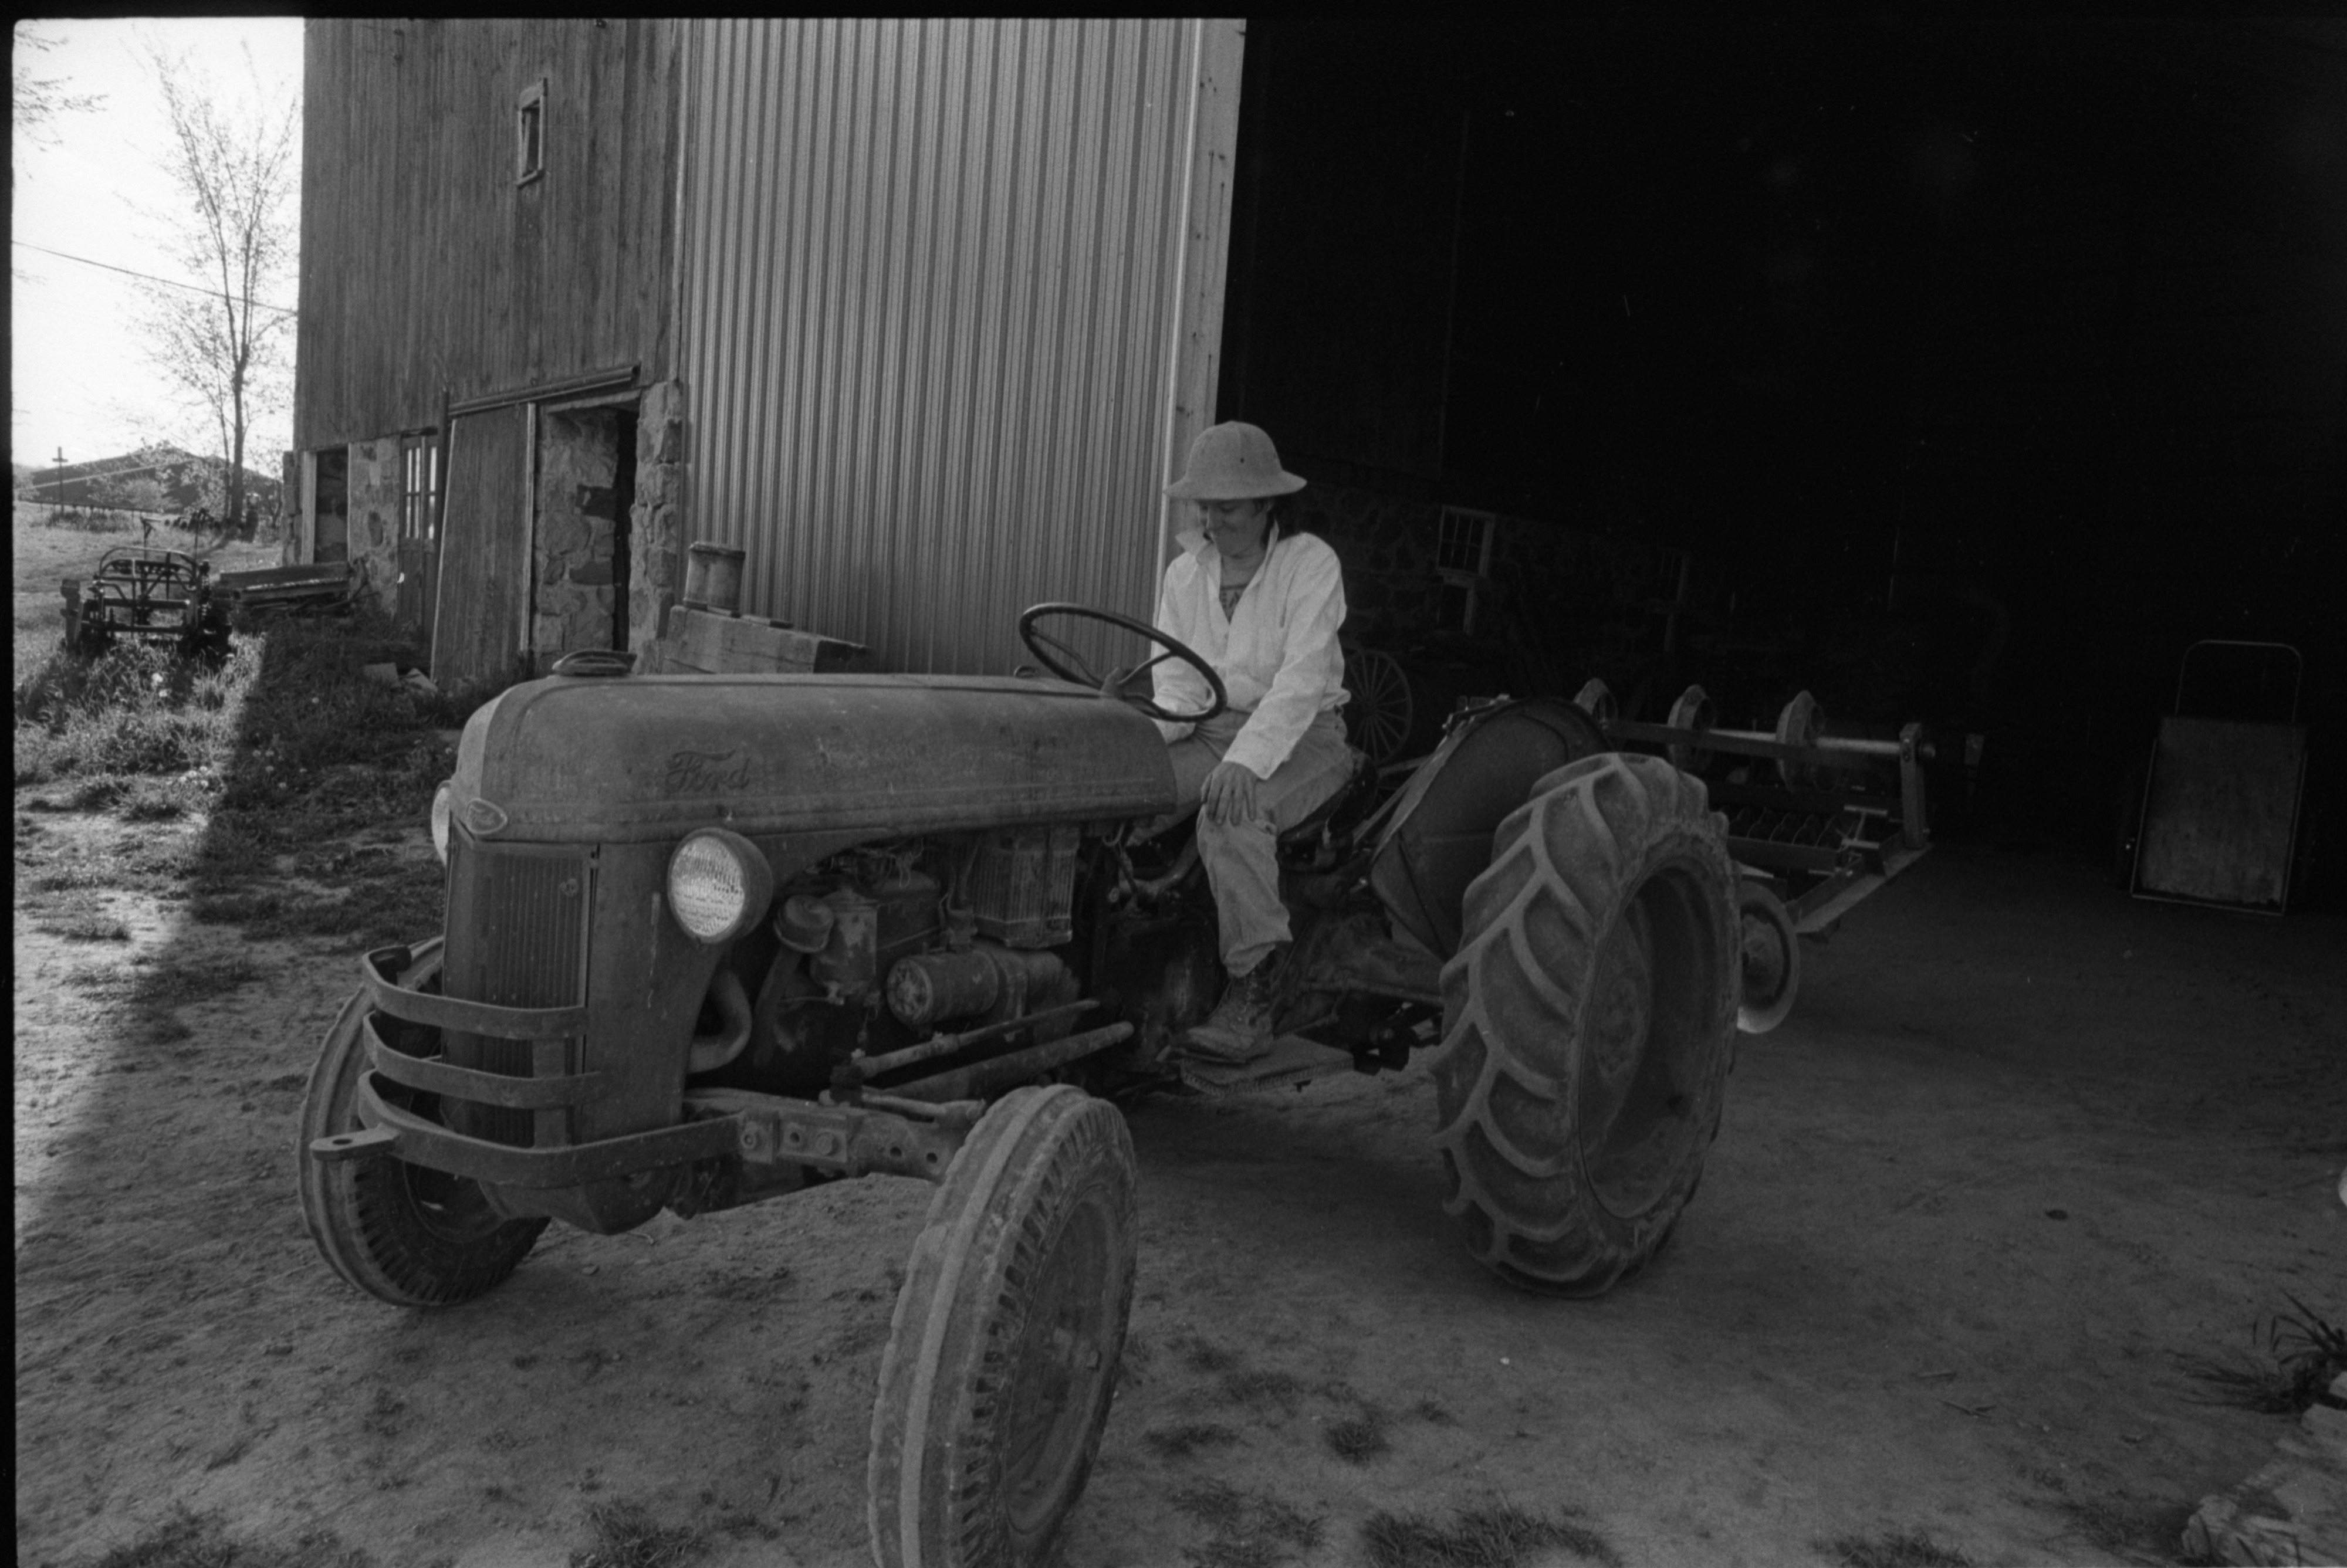 Marcia Barton Drives The Tractor At Community Farm, May 1988 image